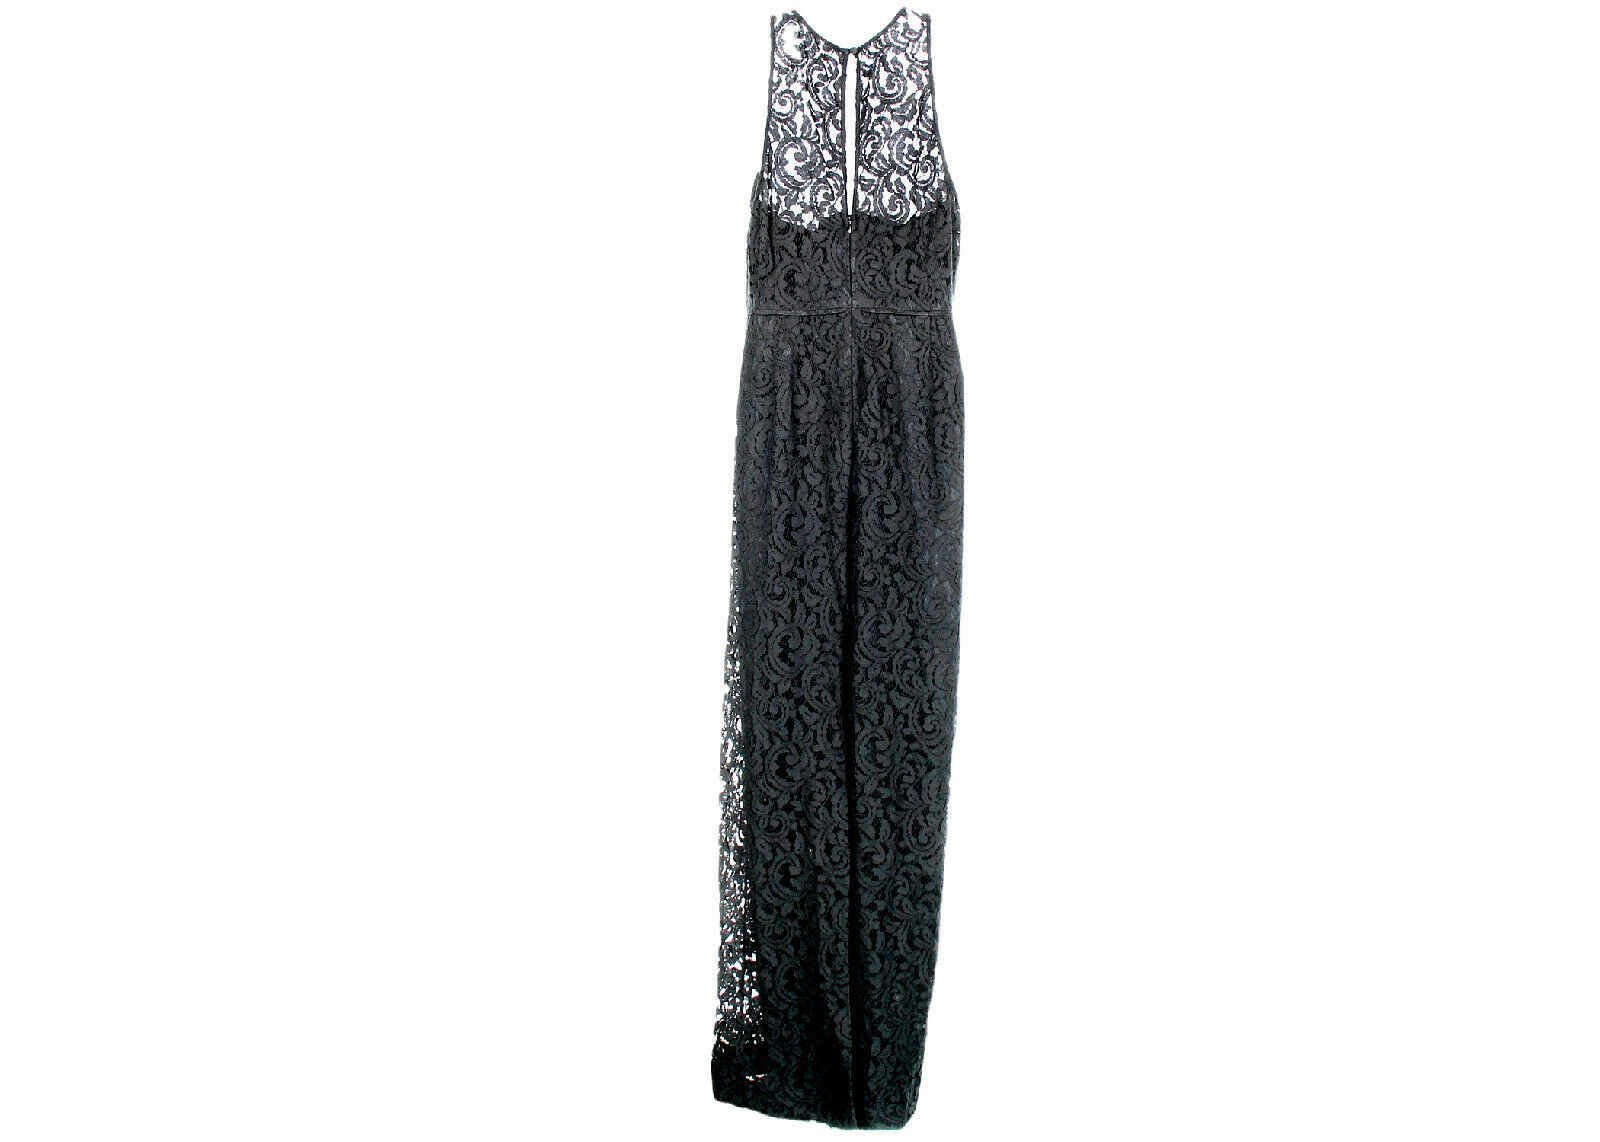 Primary image for J Crew Women's Pamela Long Dress In Leavers Lace Black Sz 16 C5557